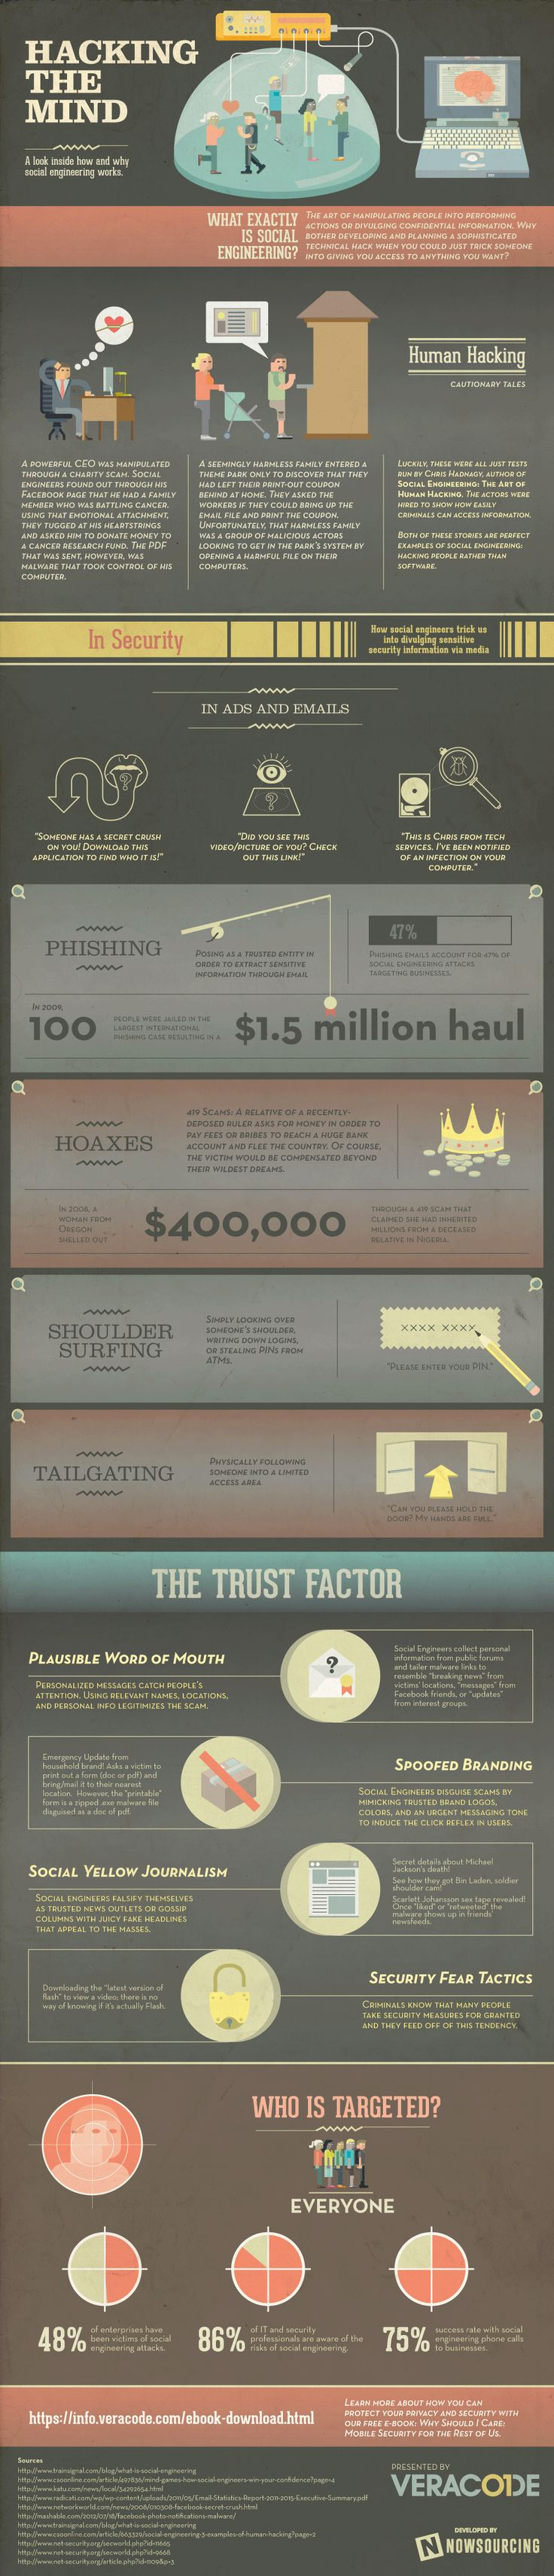 Why Social Engineering Works [infographic]  http://blogs.payscale.com/salary_report_kris_cowan/2013/03/why-social-engineering-works-infographic.html